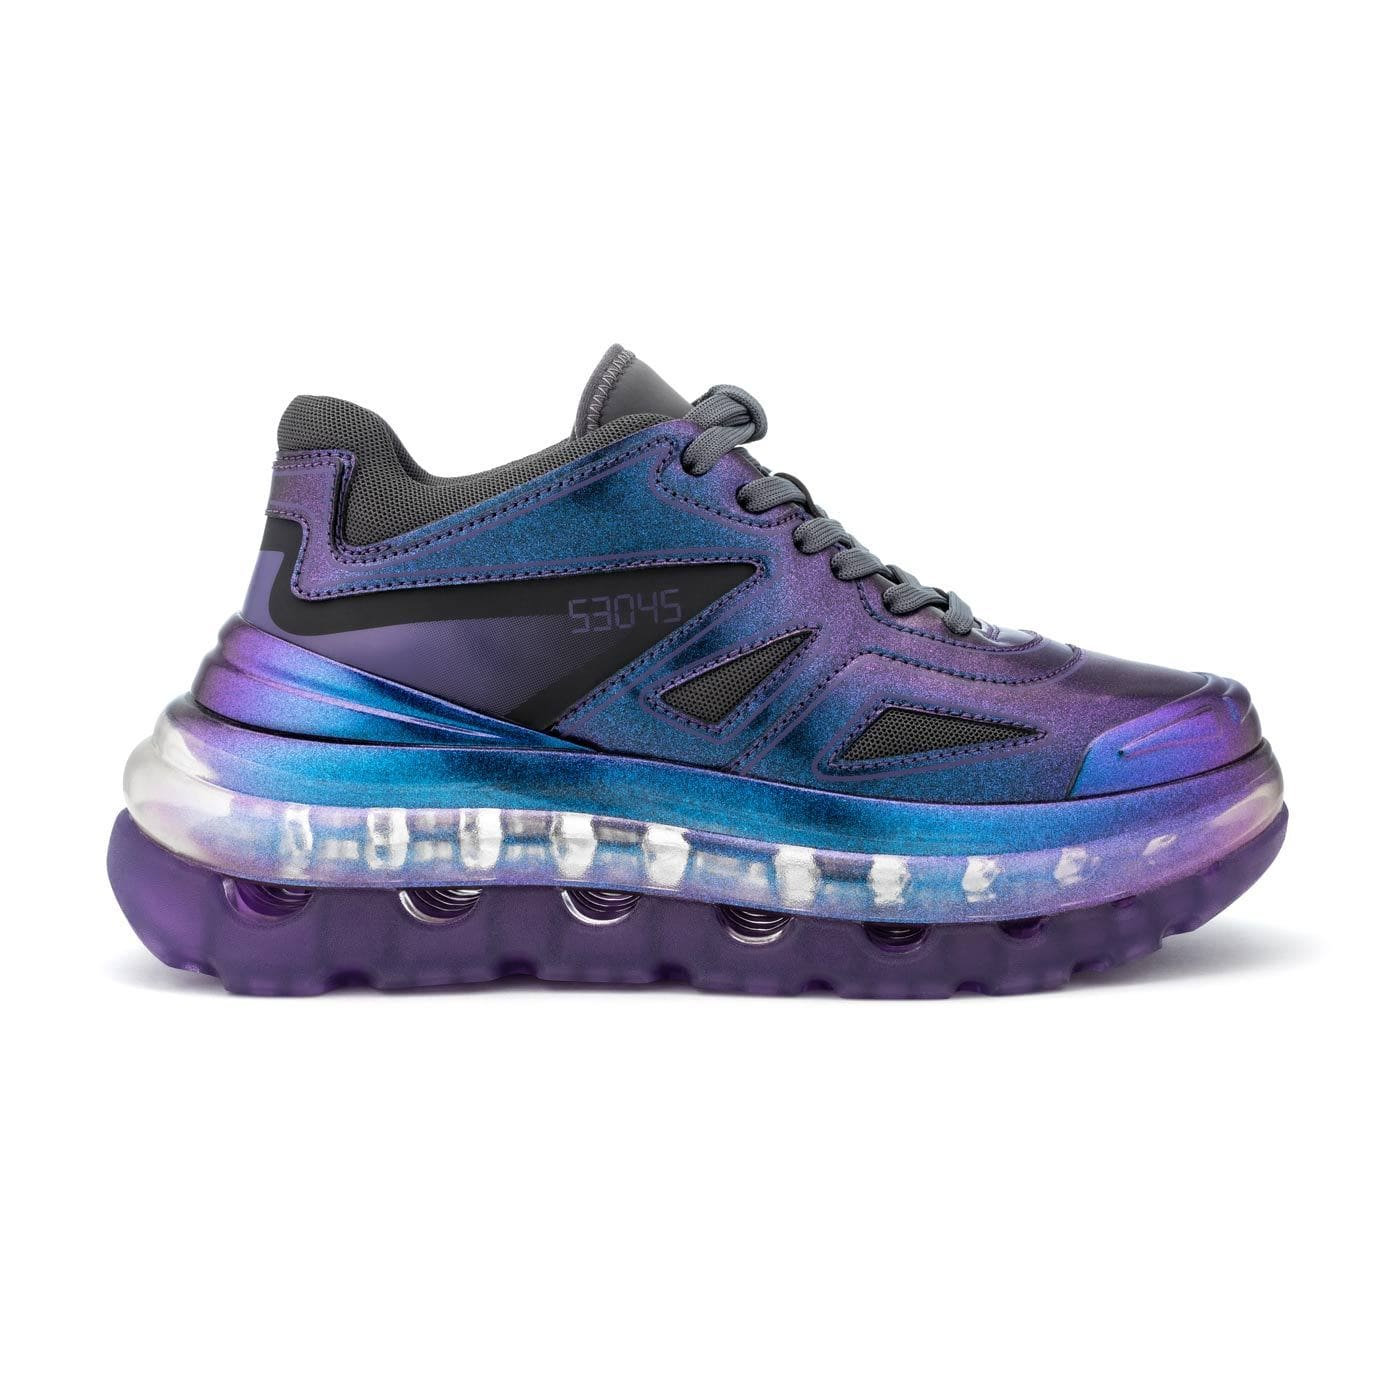 SHOES 53045 - Bump'Air Scarab Purple